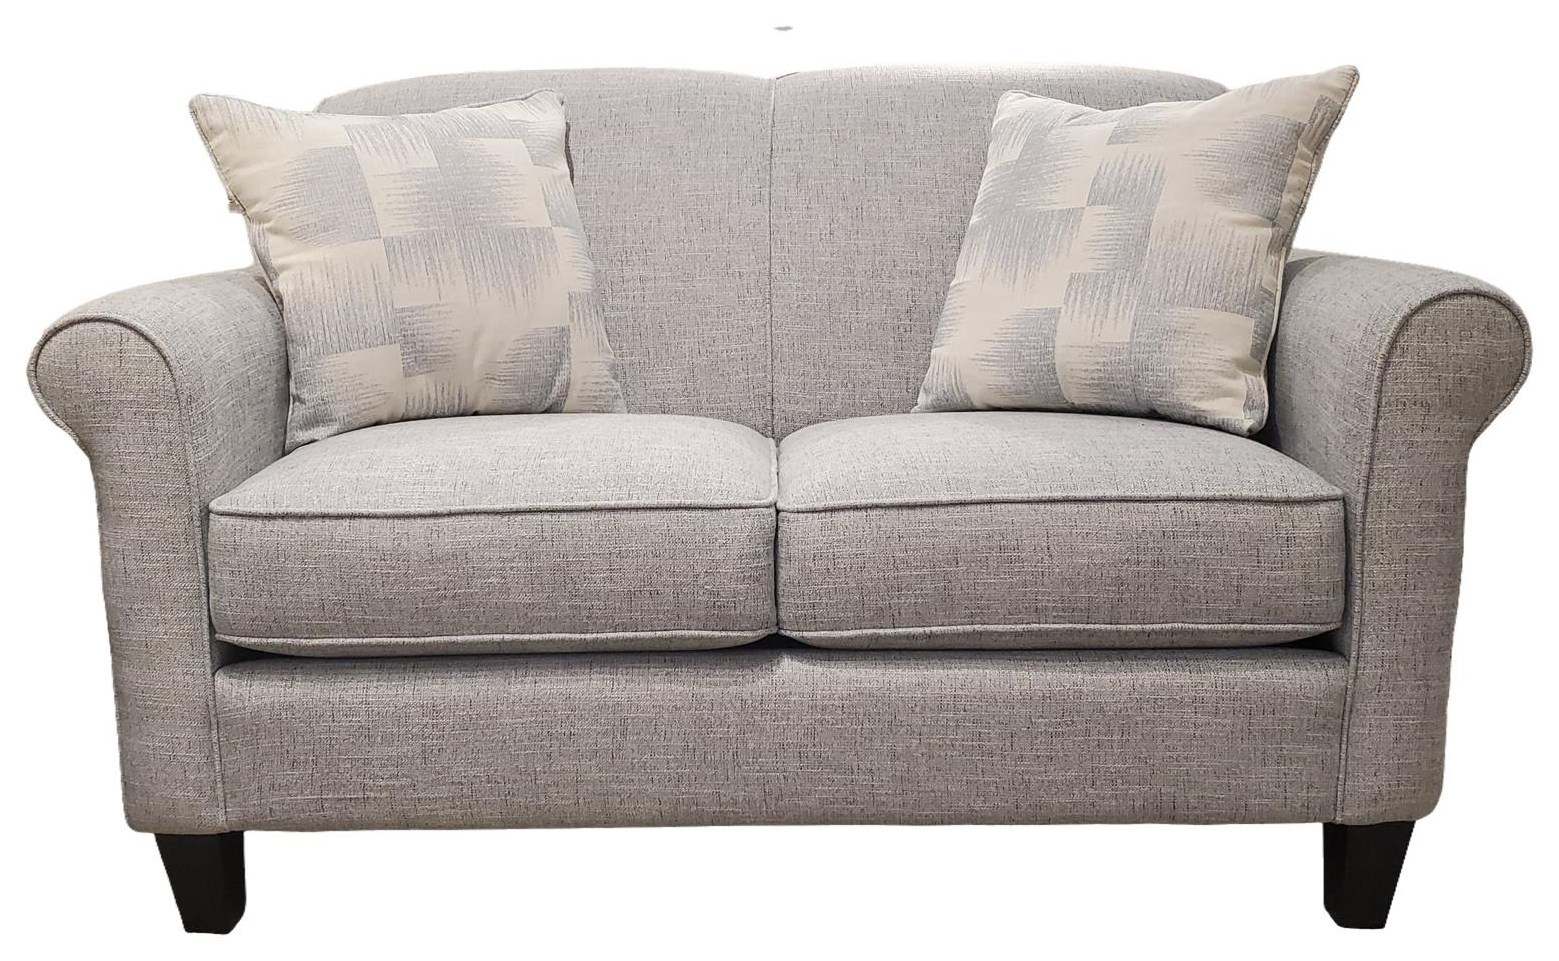 2963 2963L by Decor-Rest at Upper Room Home Furnishings